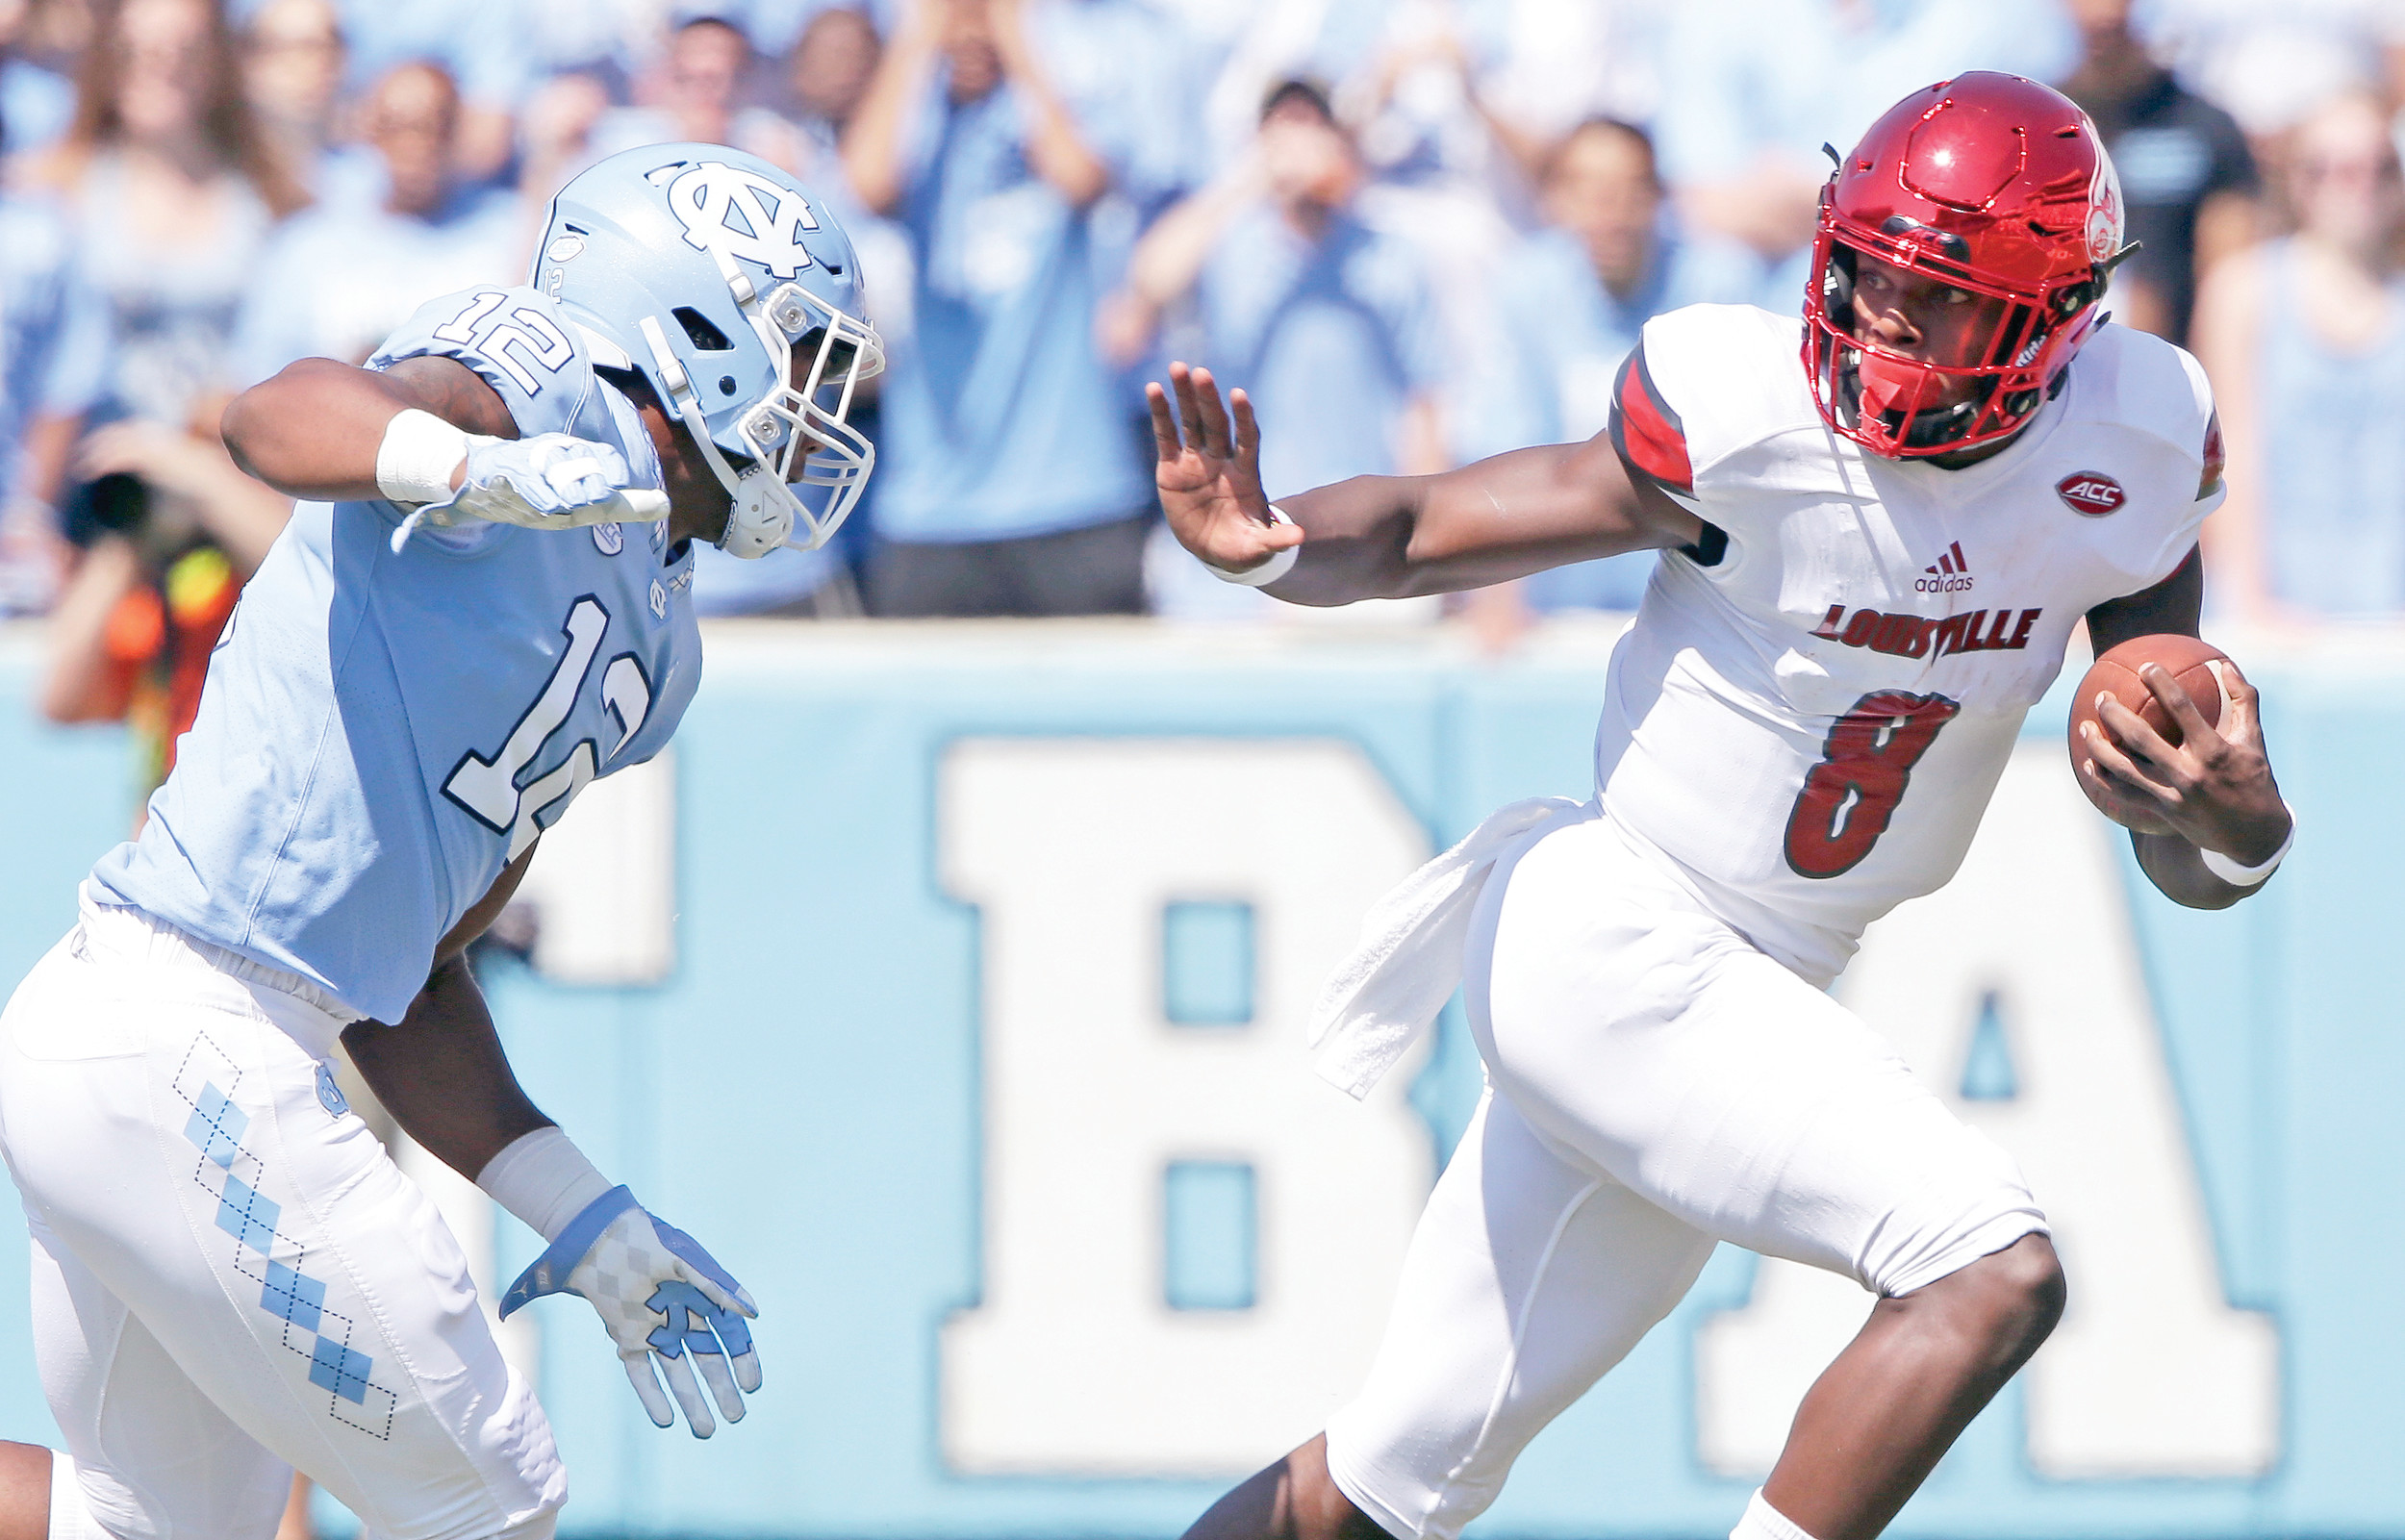 Clemson's defense, which has not allowed a touchdown this season, will get its biggest test on Saturday when it travels to Louisville, Kentucky, to face the reigning Heisman Trophy winner, Louisville quarterback Lamar Jackson (8), who leads the nation in total offense at 505 yards per game.